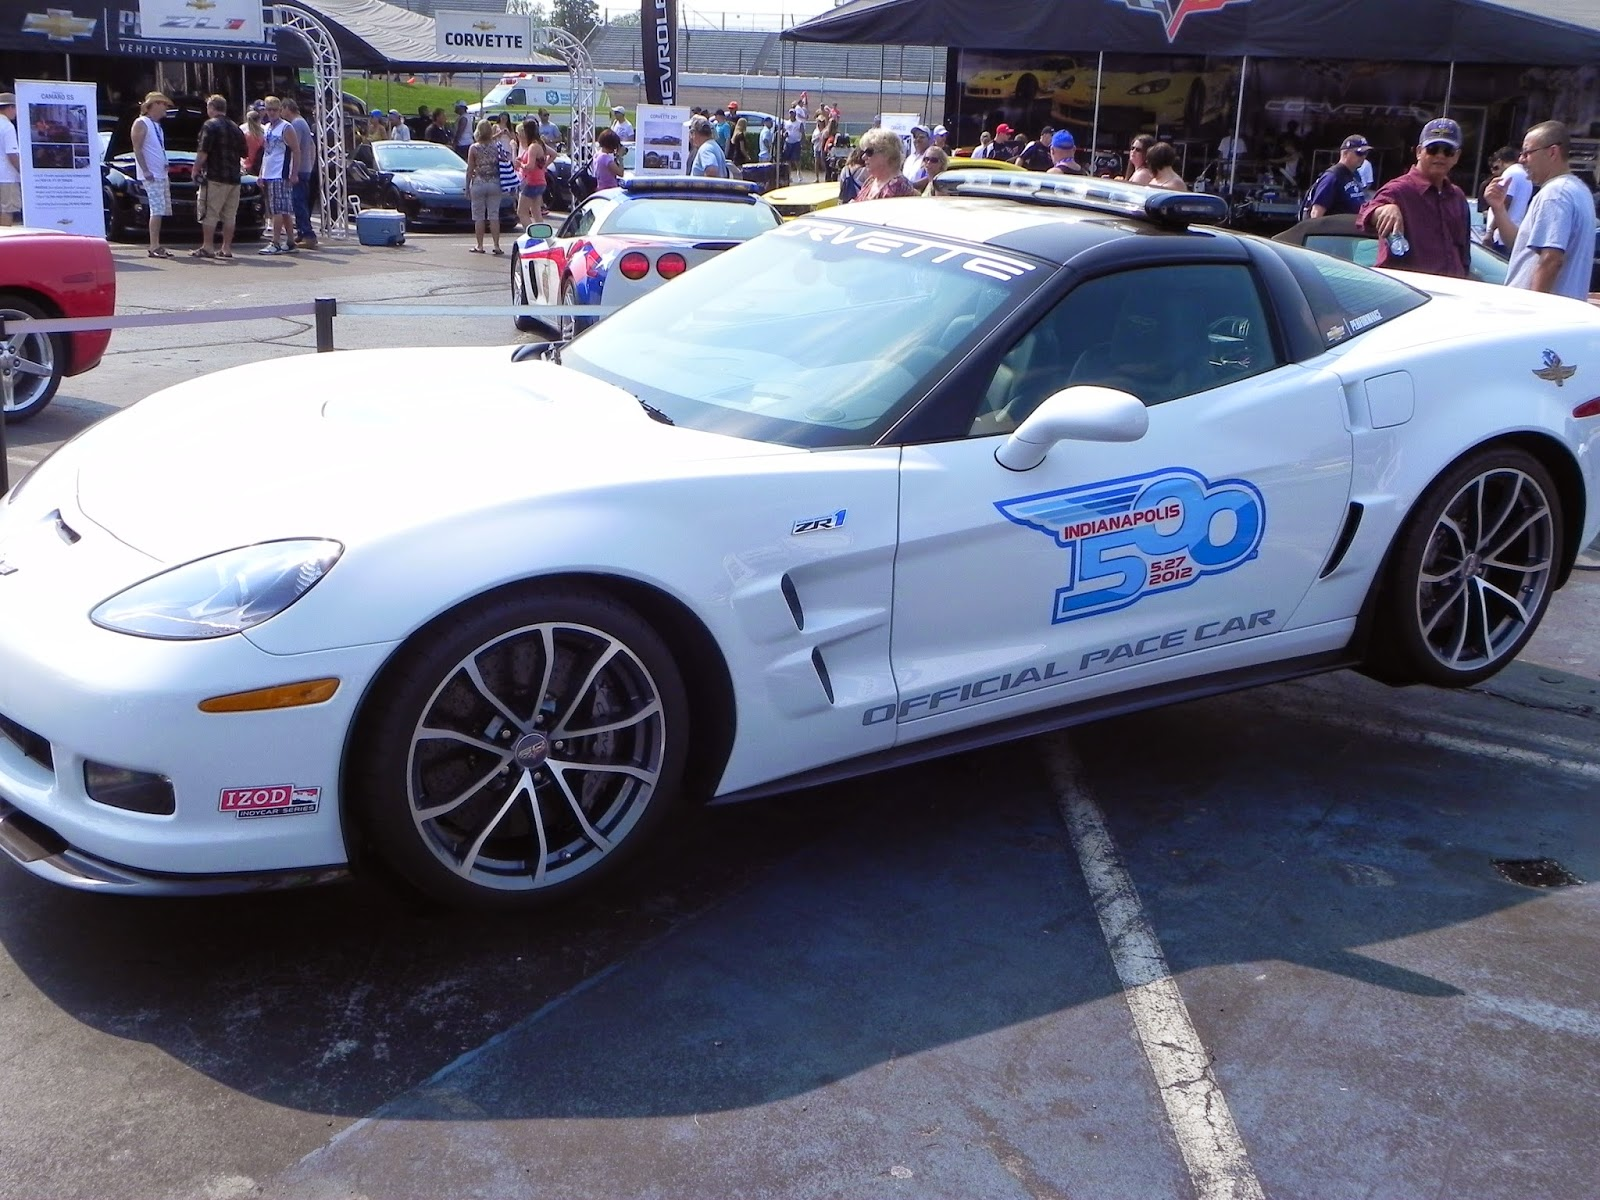 The 2012 Chevrolet Corvette C6 ZR1 pace model driven by Guy Fieri